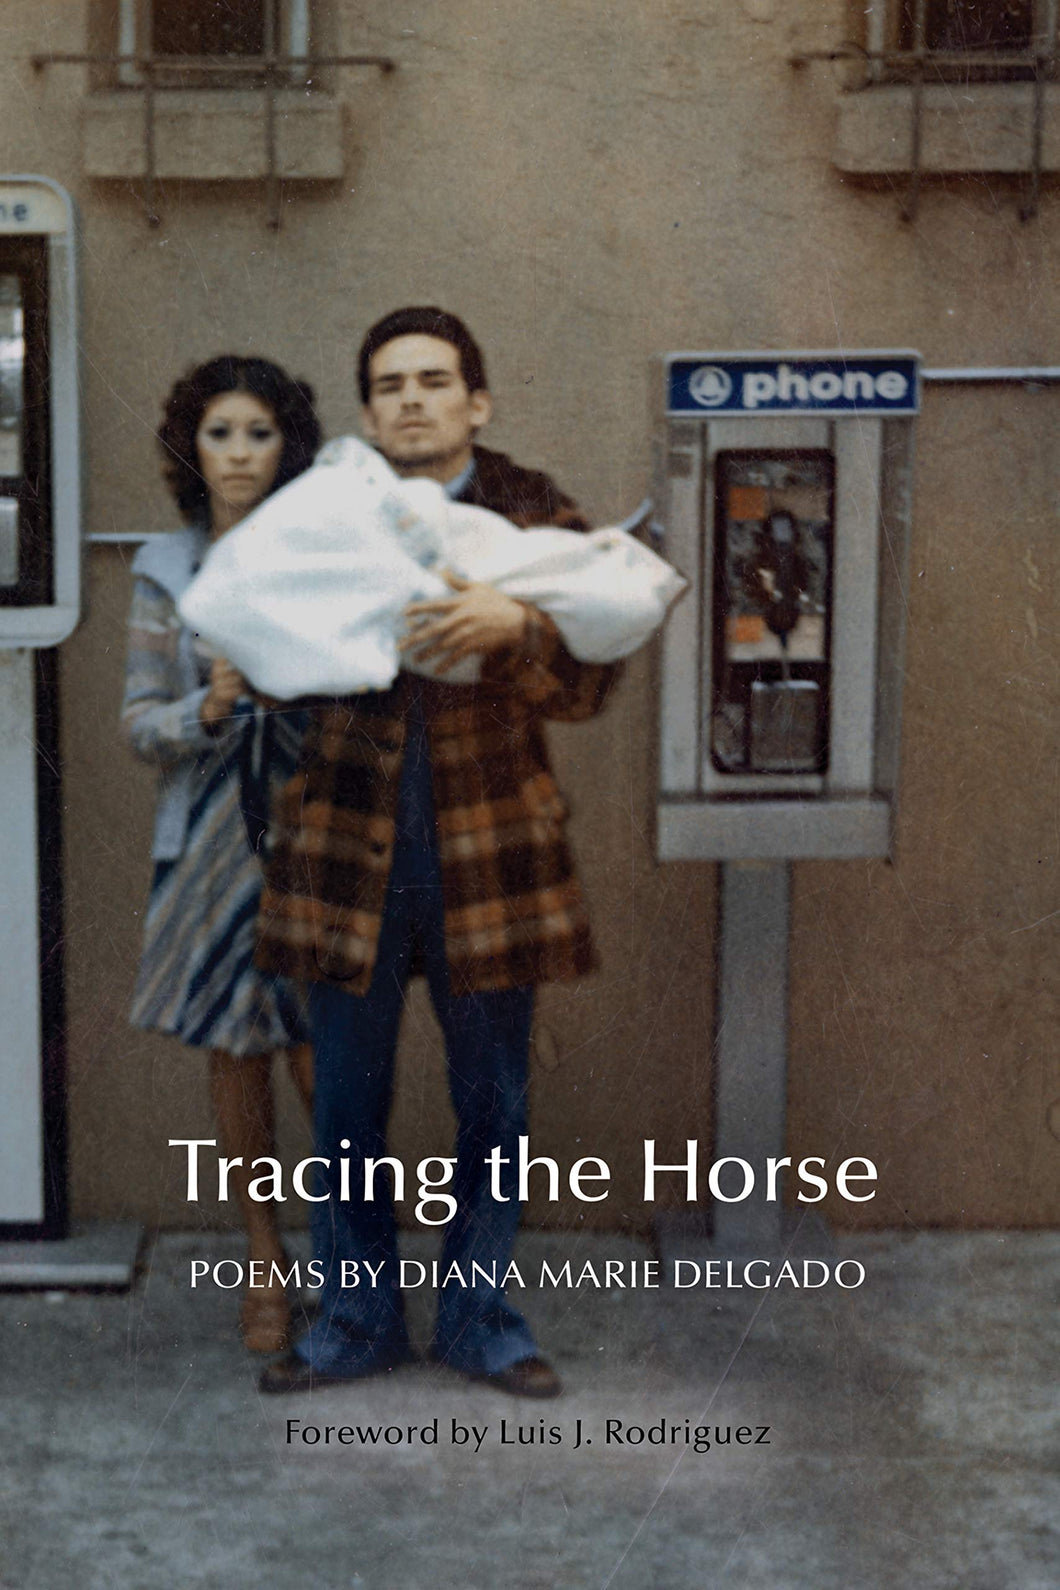 Tracing the Horse by Diana Marie Delgado